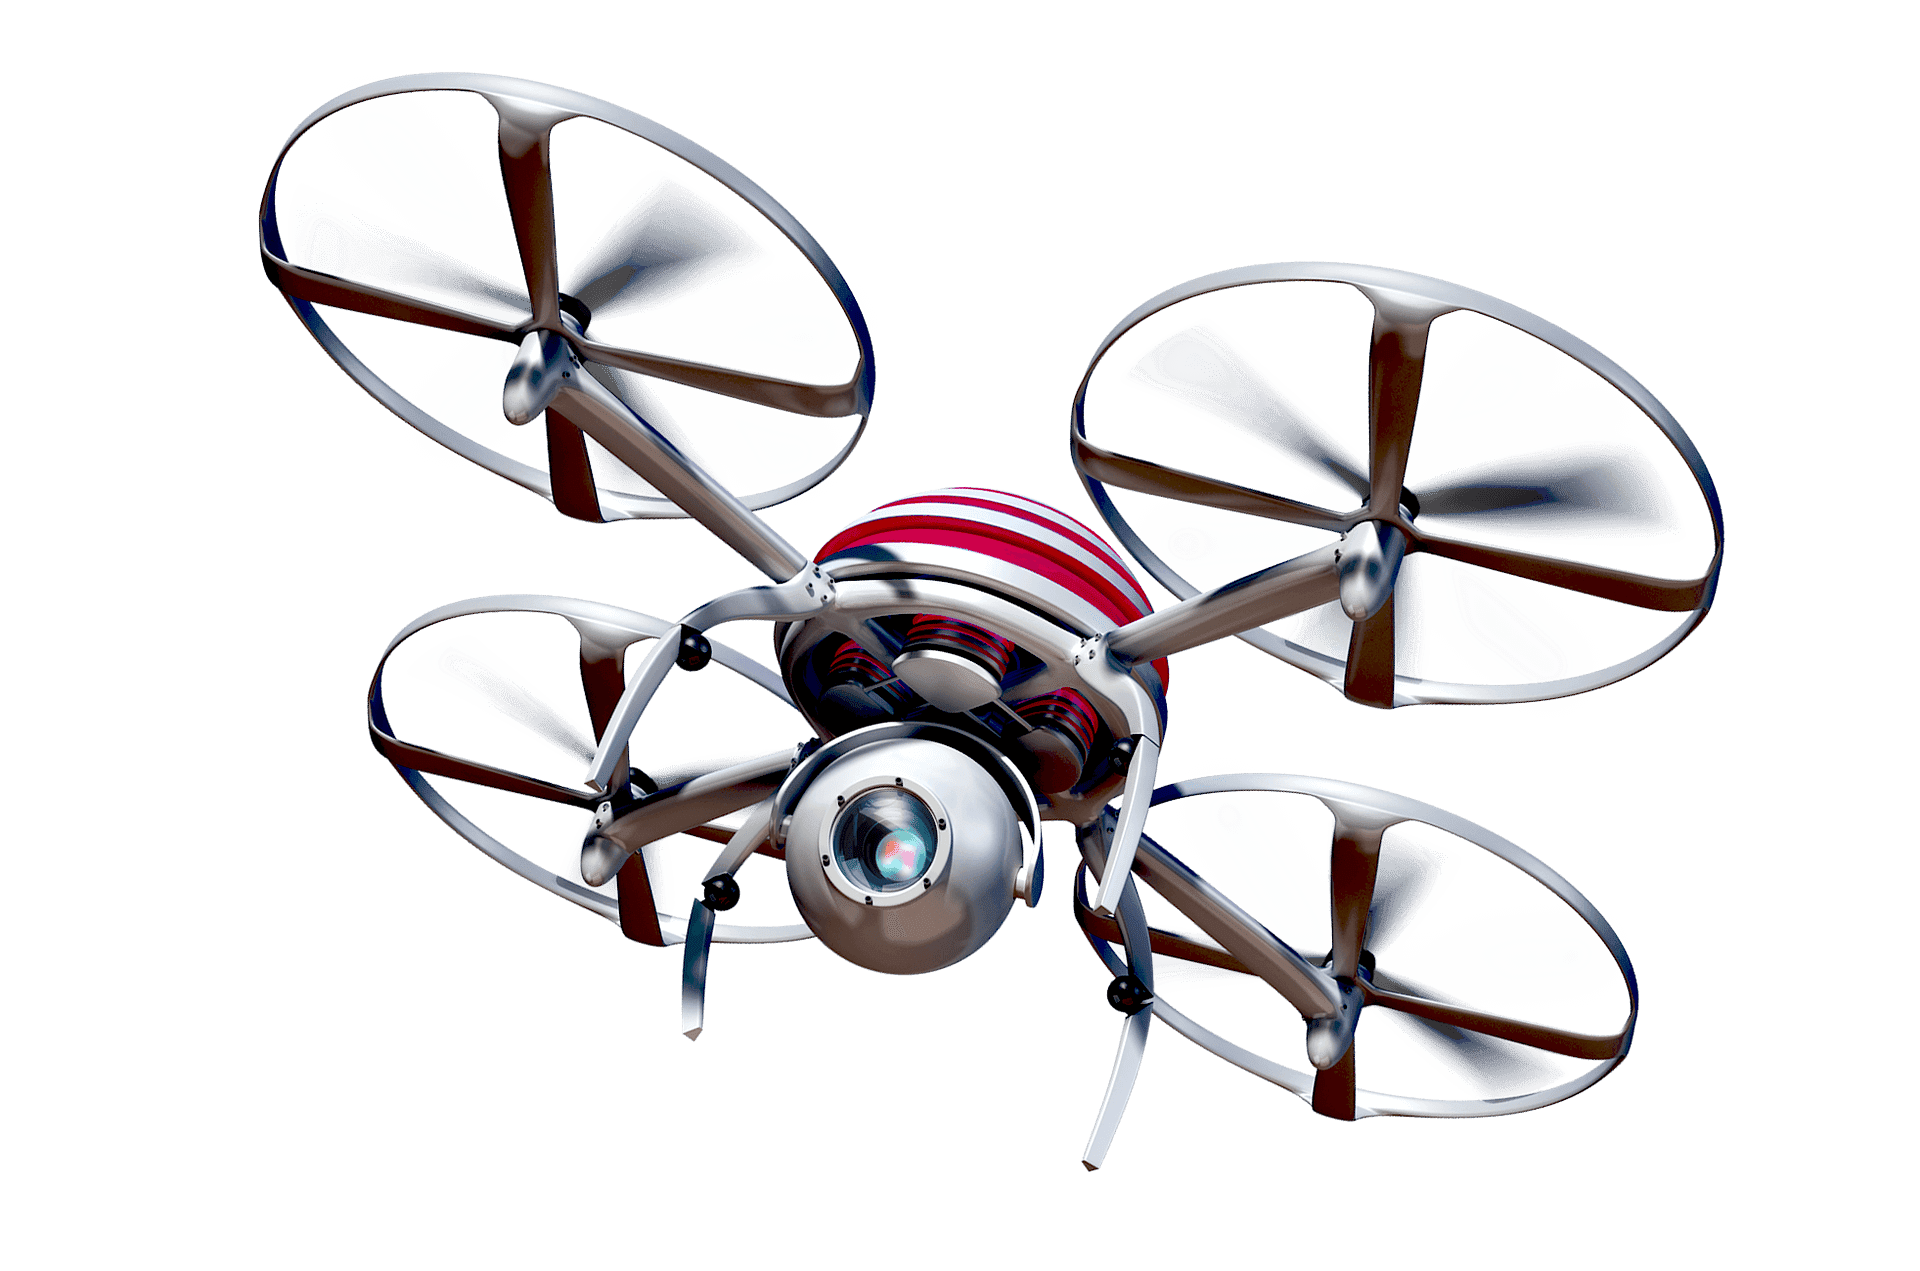 content/it-it/images/repository/isc/2020/a-spy-drone-with-large-camera-lens.png